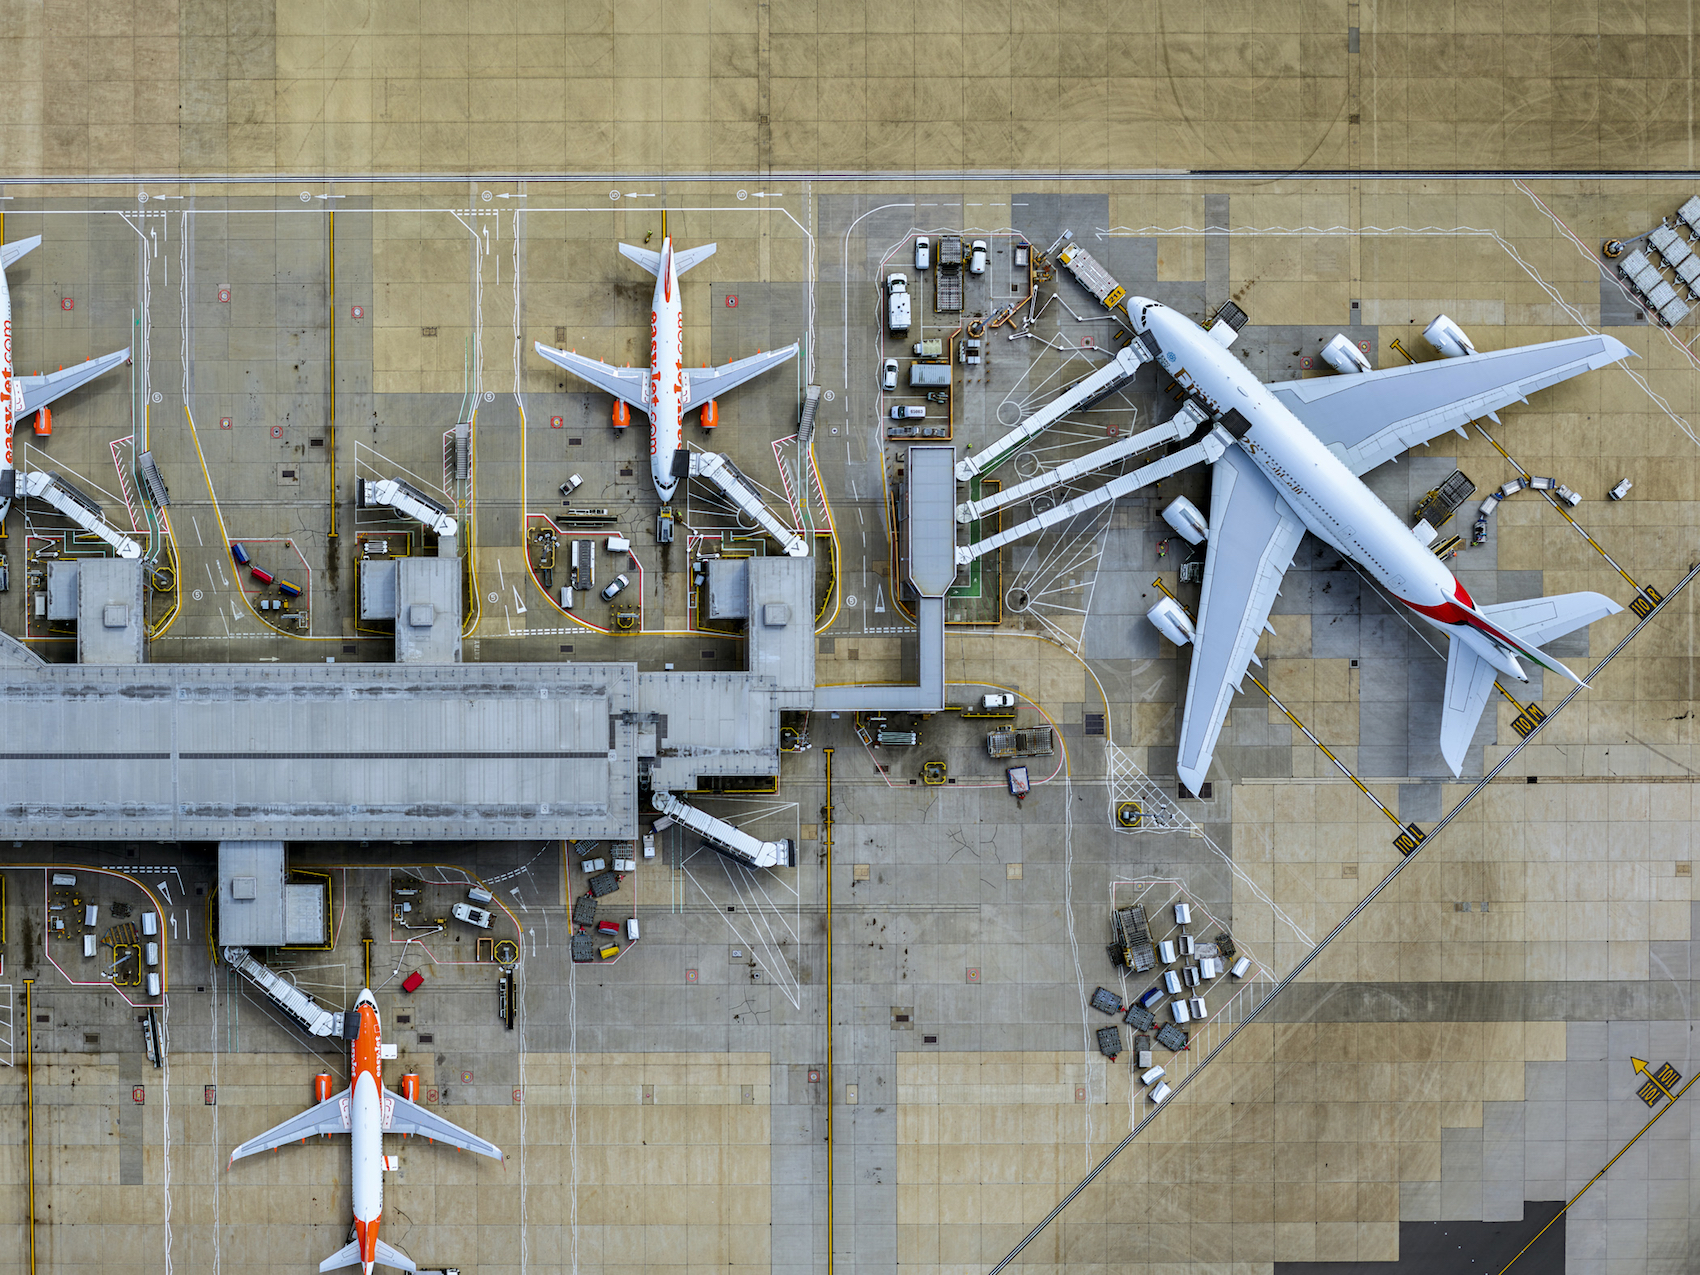 Gatwick Airport embraces IoT and Machine Learning TechNative